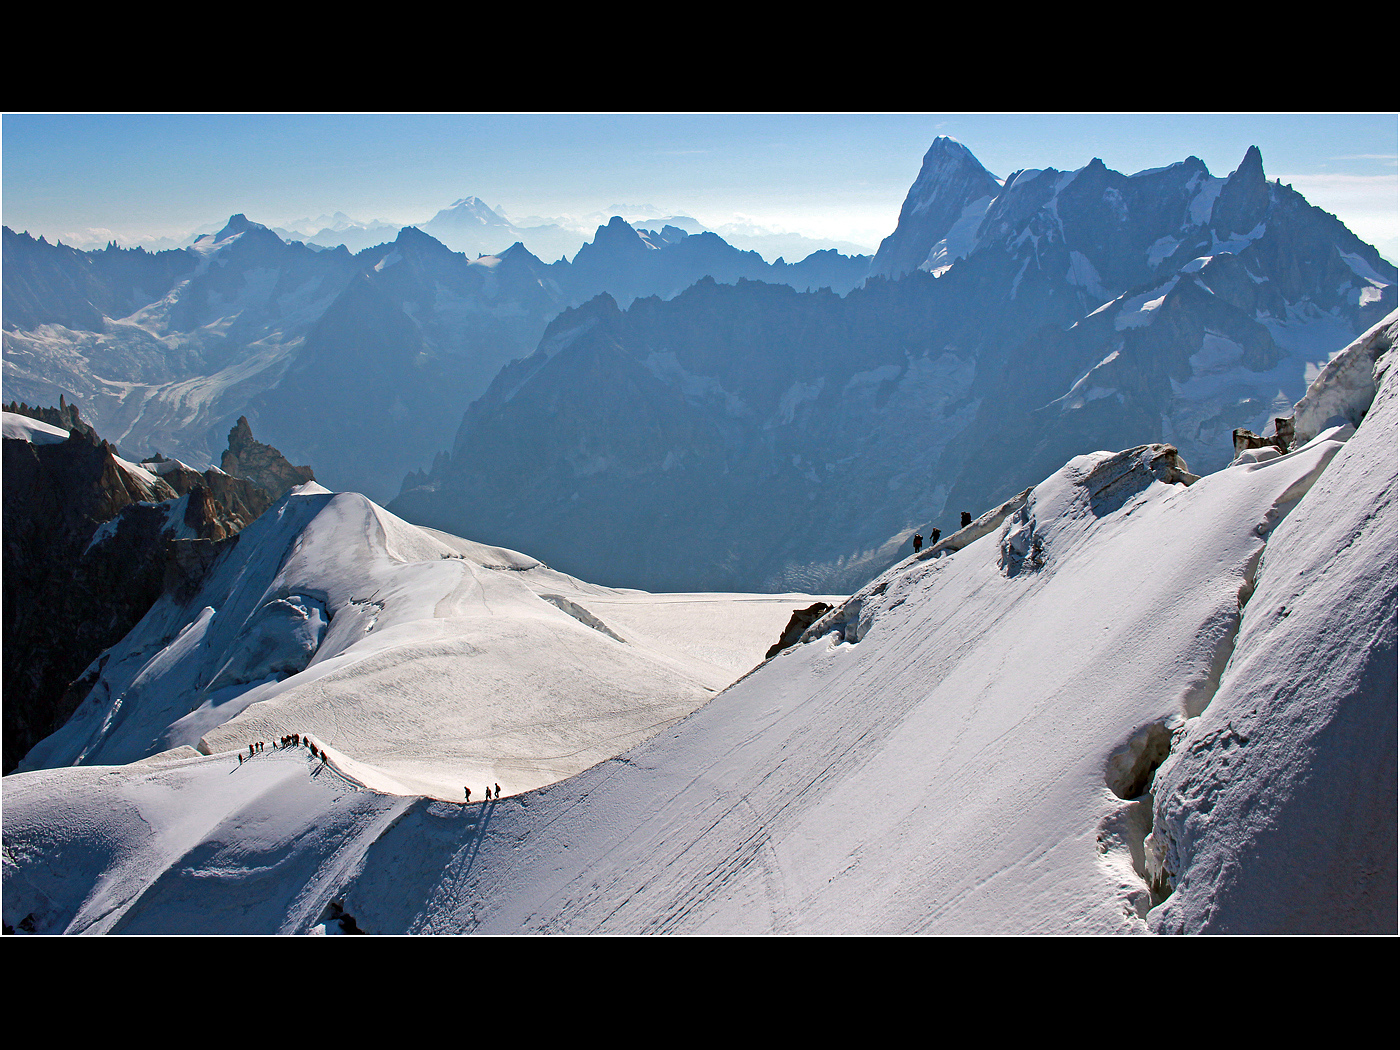 Snow Ridge, Chamonix